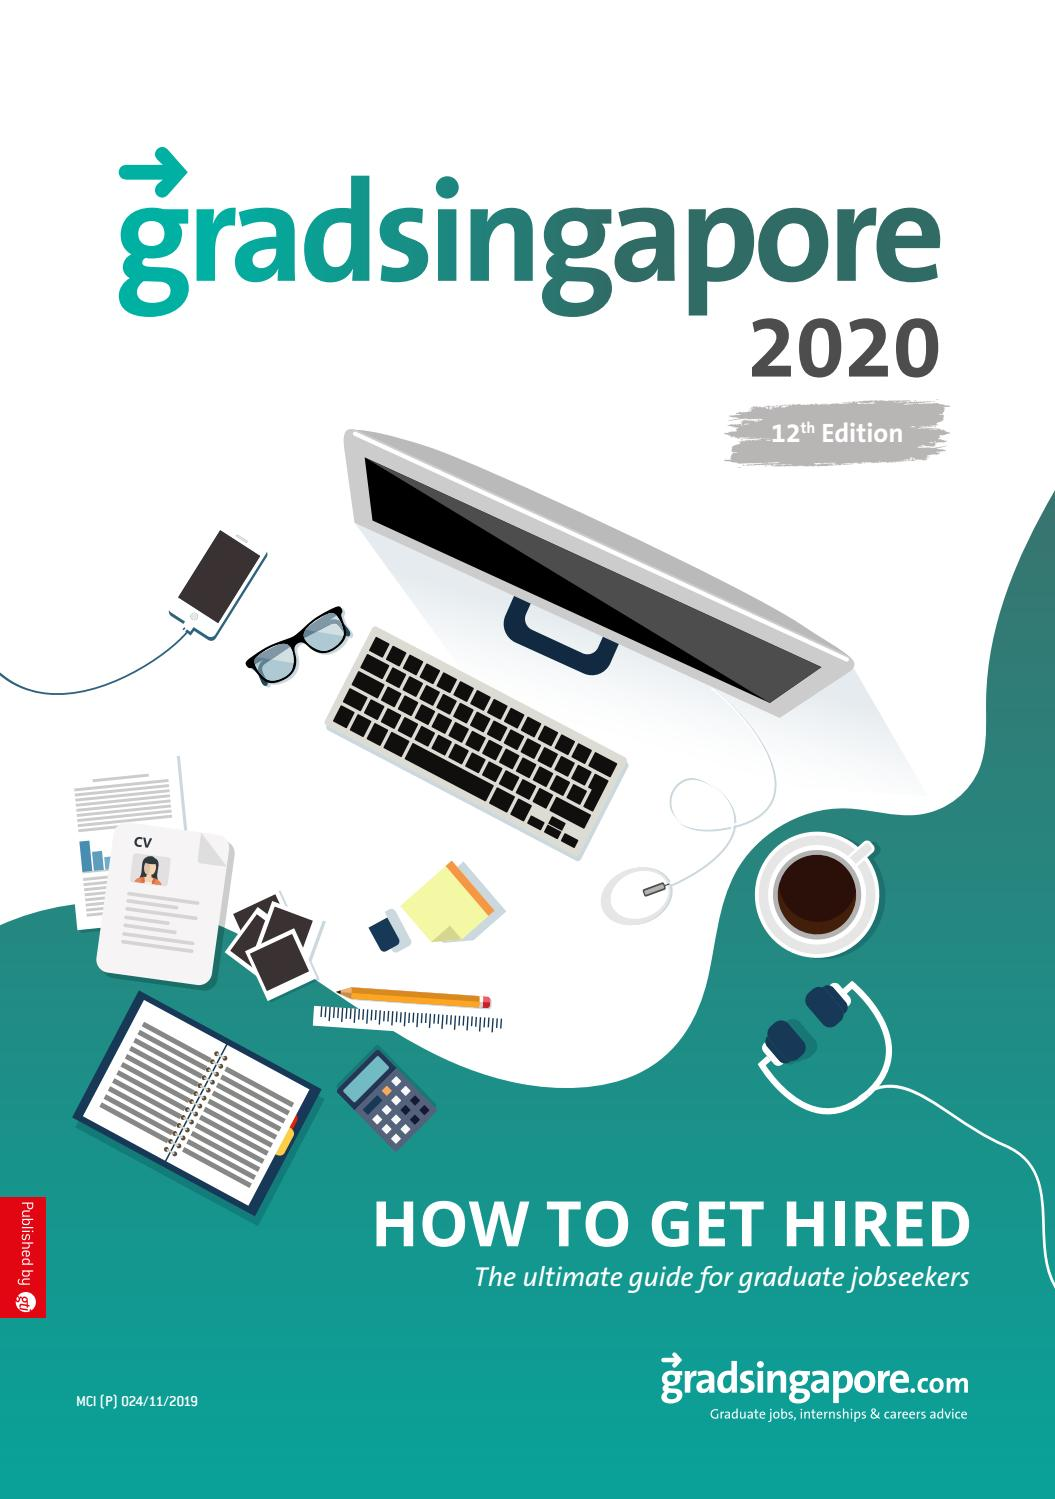 Gradsingapore How To Get Hired 2020 By Gti Media Asia Issuu